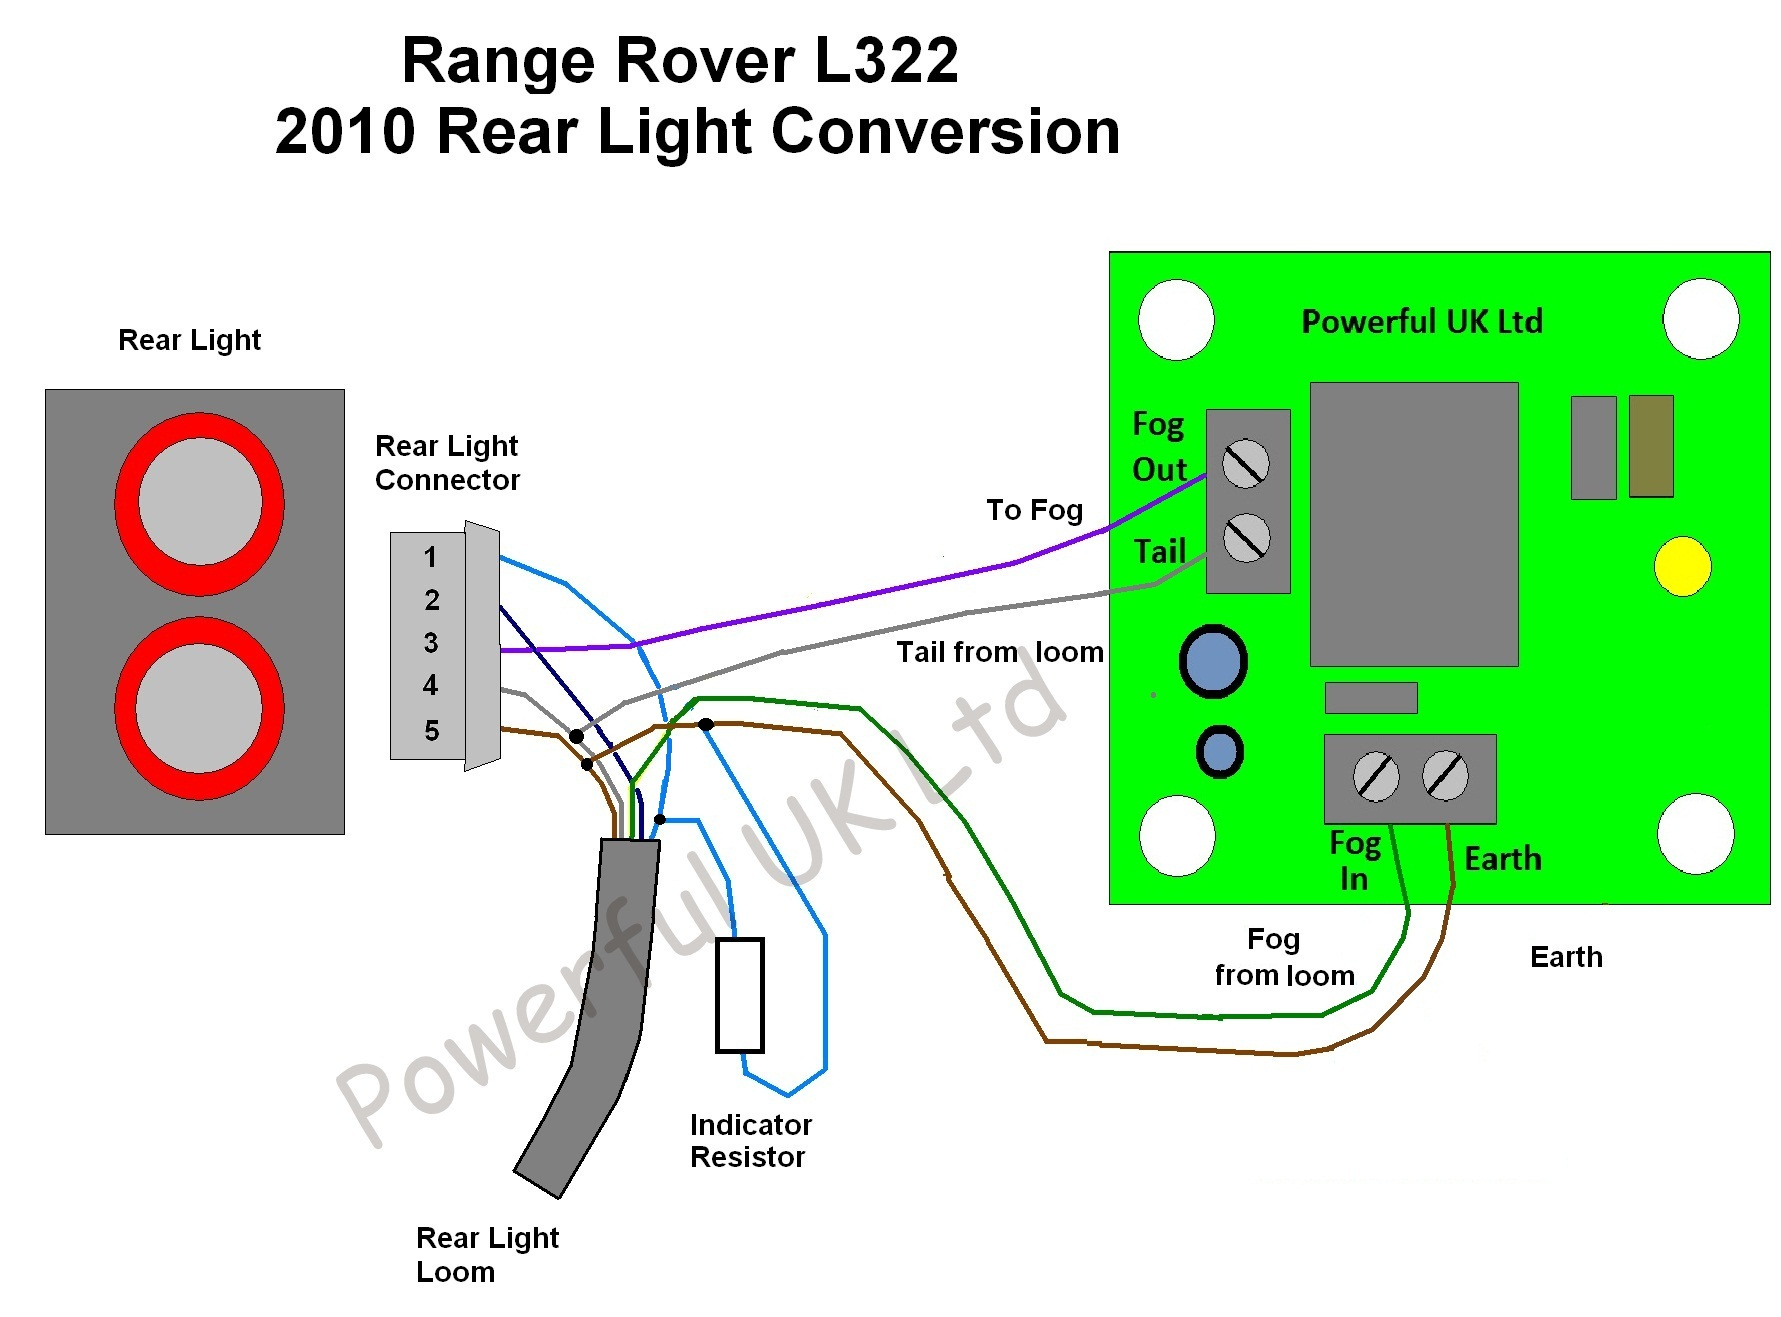 Range Rover L322 Wiring Td6 Diagram 2010 Led Fog Light Flash Fix For 0204 Ebay